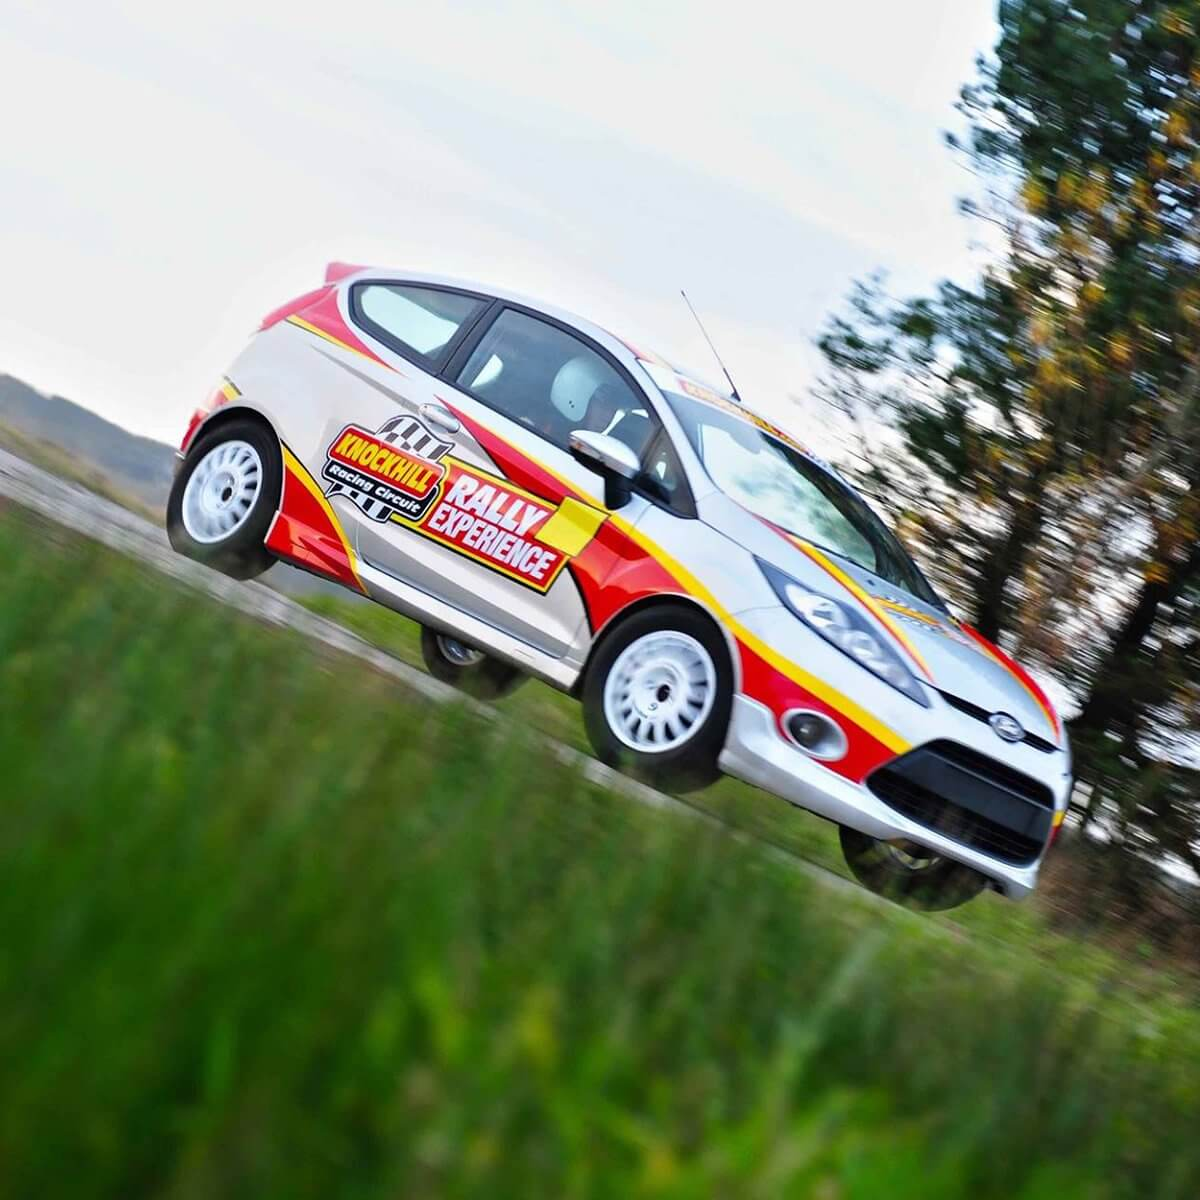 Design & Signage, rally car graphics